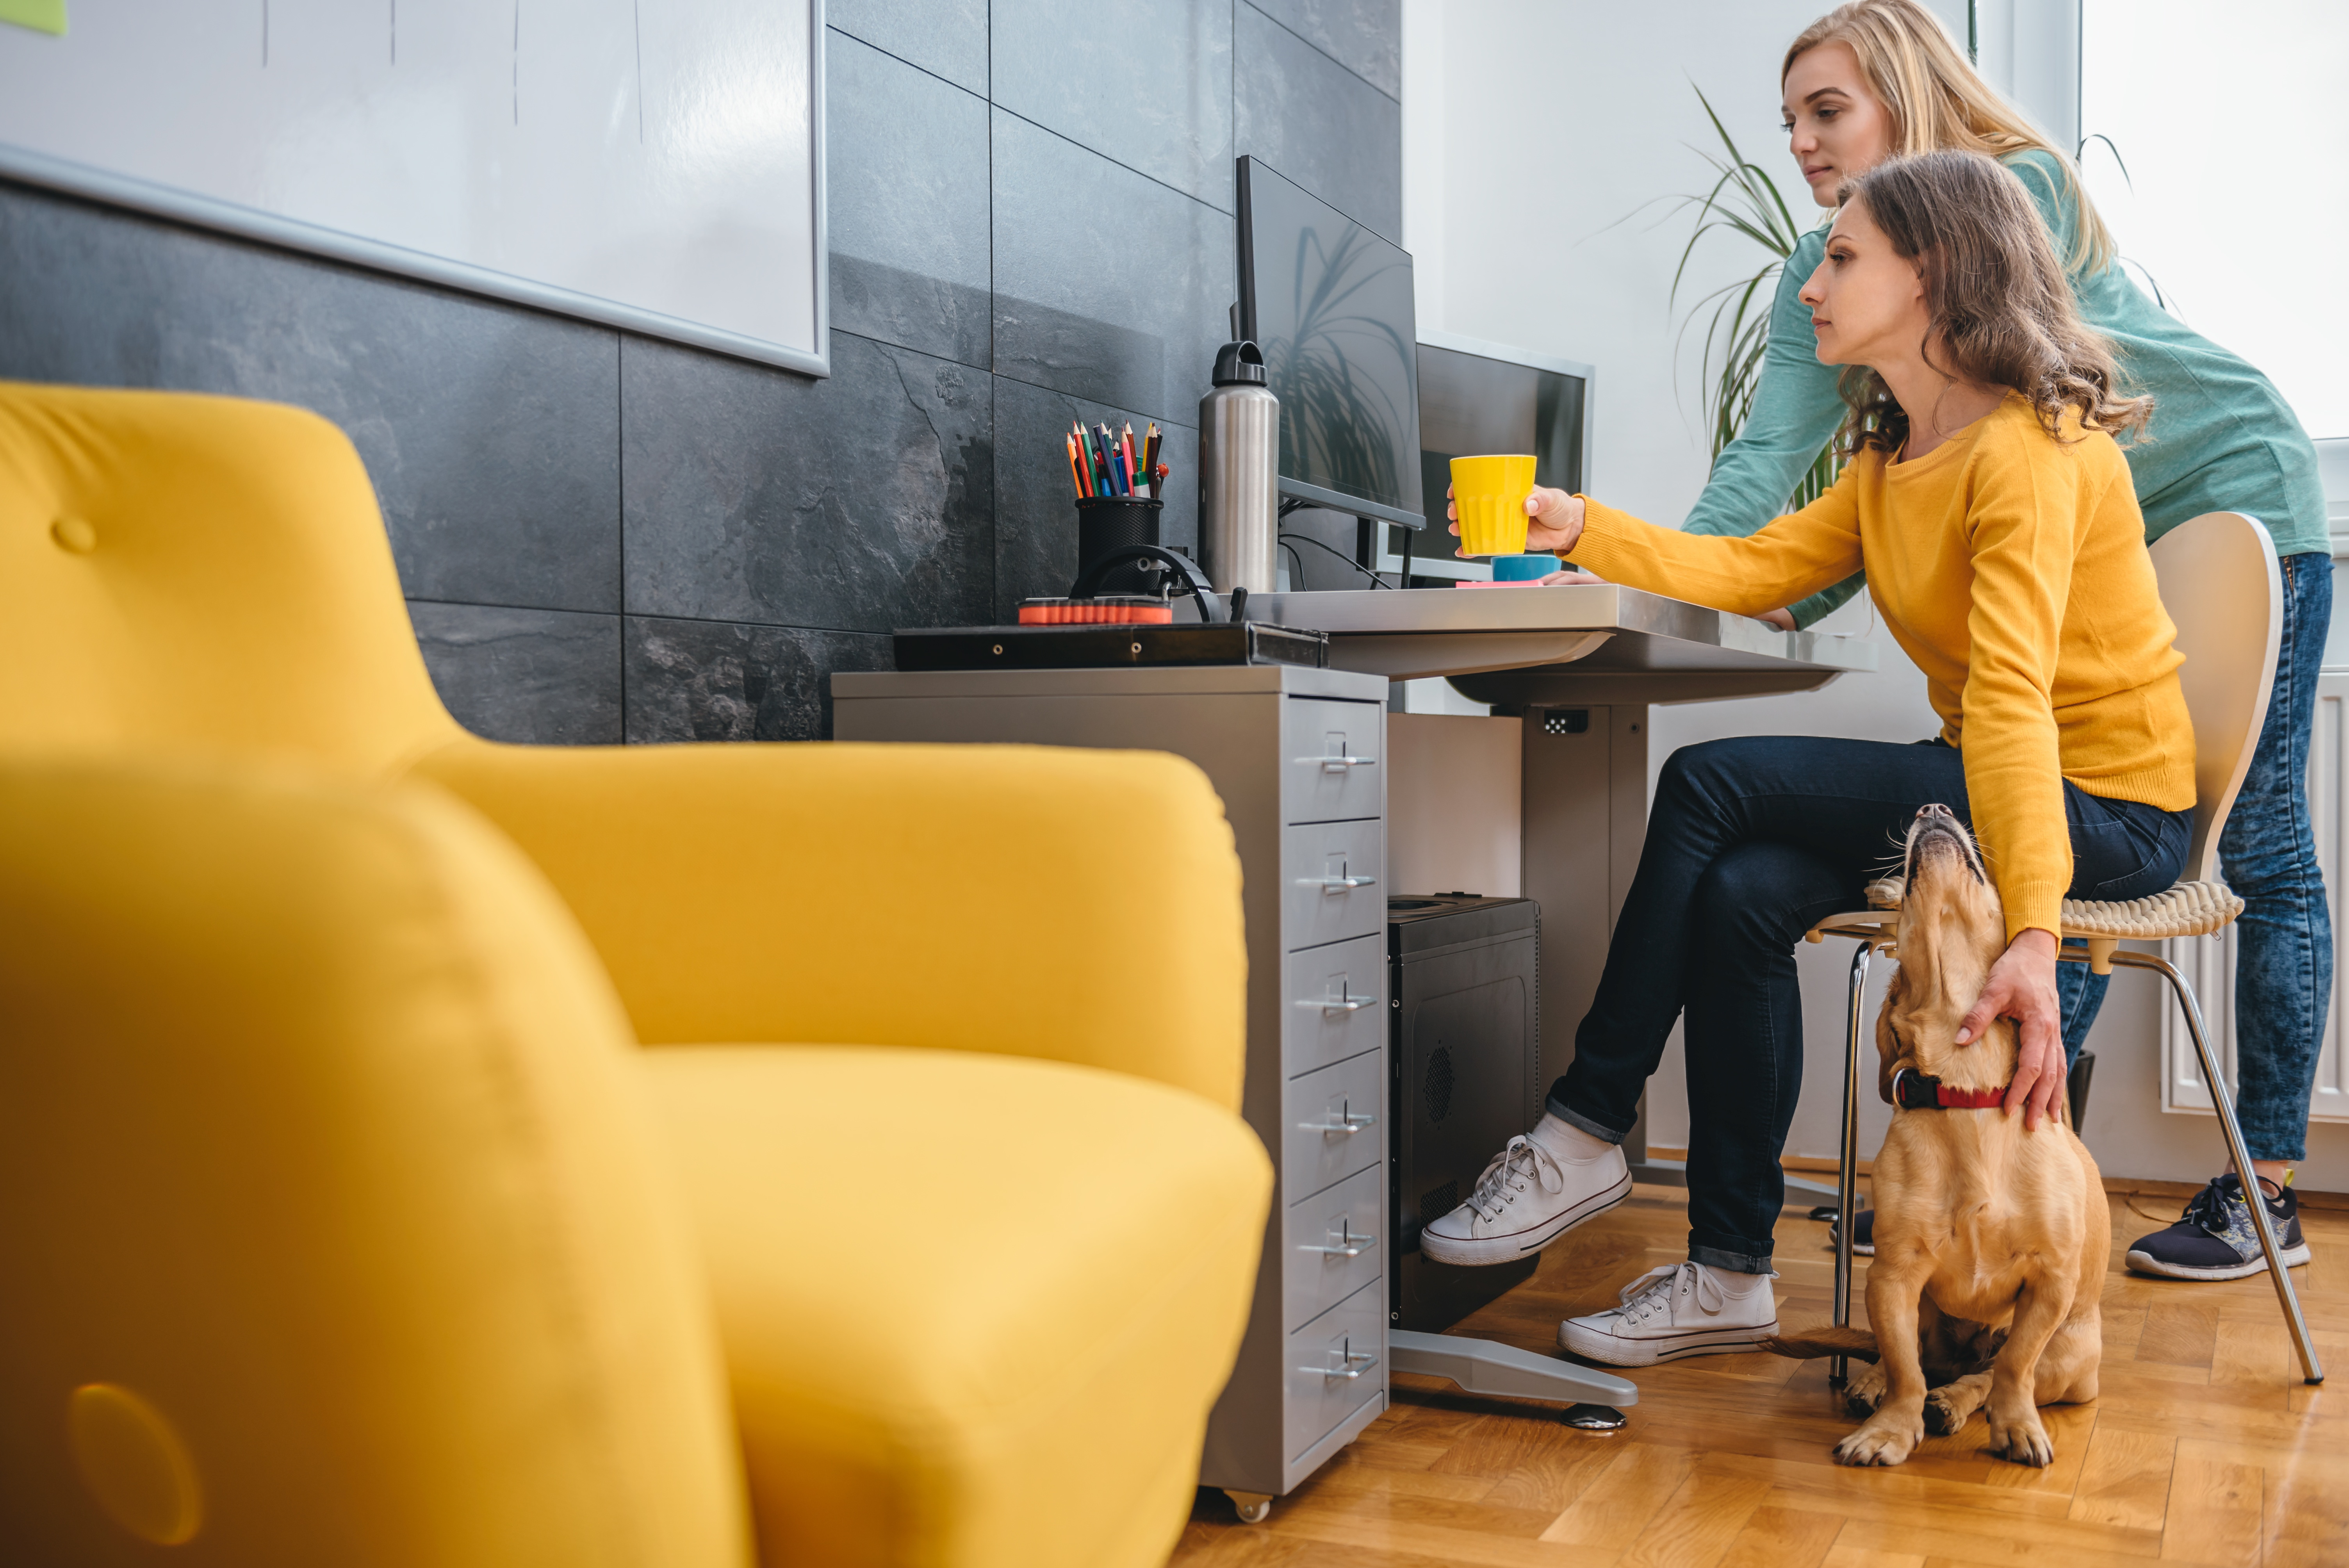 Bringing Your Dog To Work Makes For Happier Employees